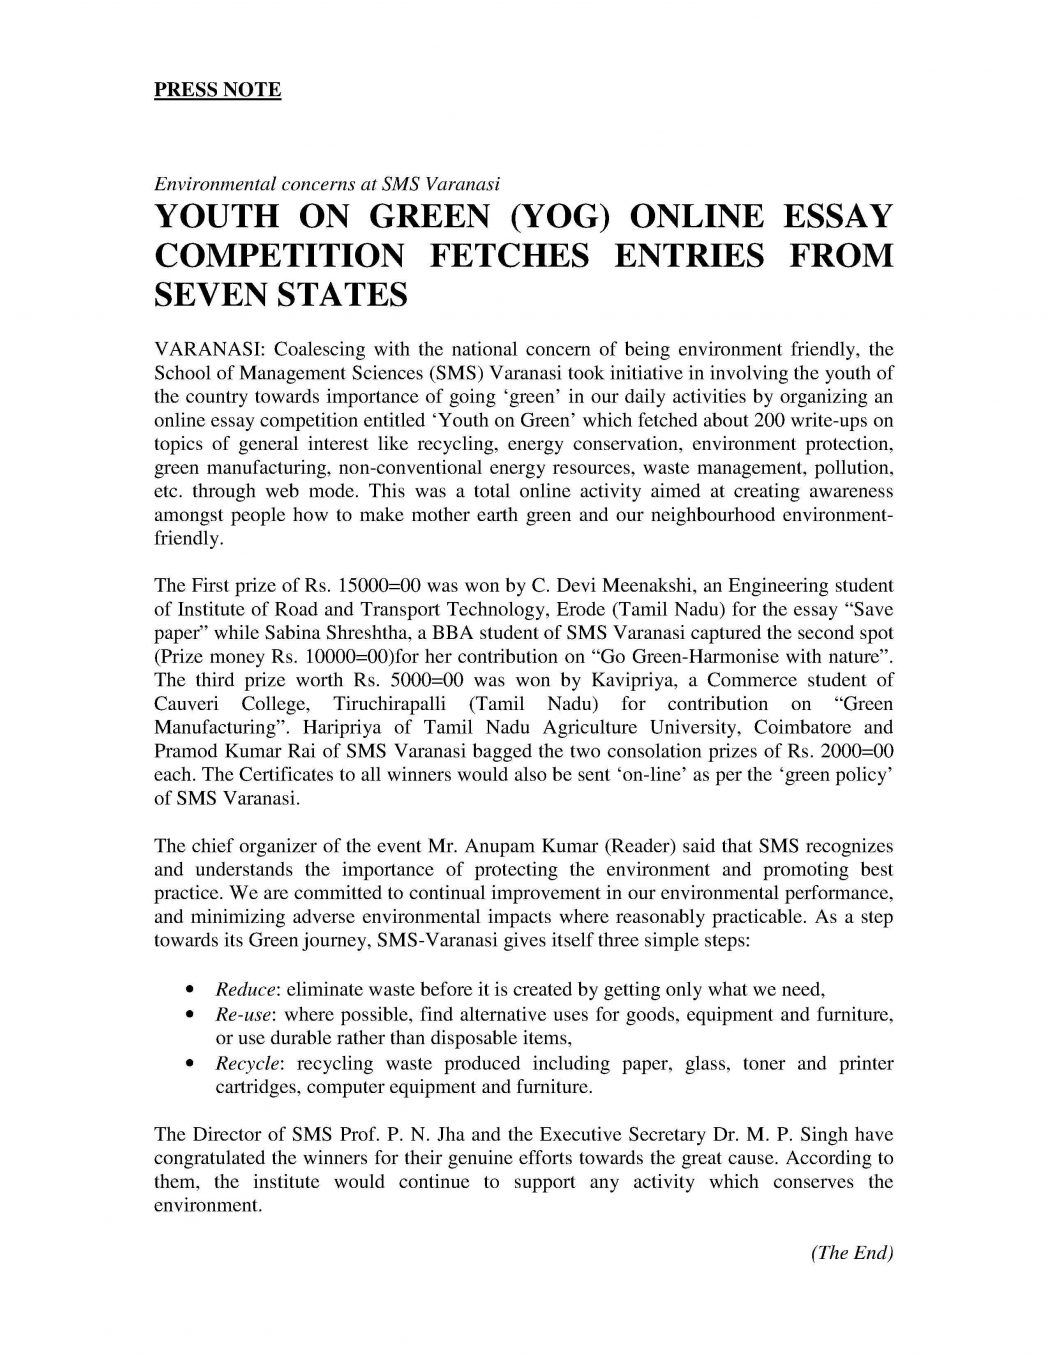 008 Healthy Food Essay Essays Eating Organizations Online Yog Press Re Block 1048x1356 Best On For Class 10 My Favourite 1 In Tamil Full